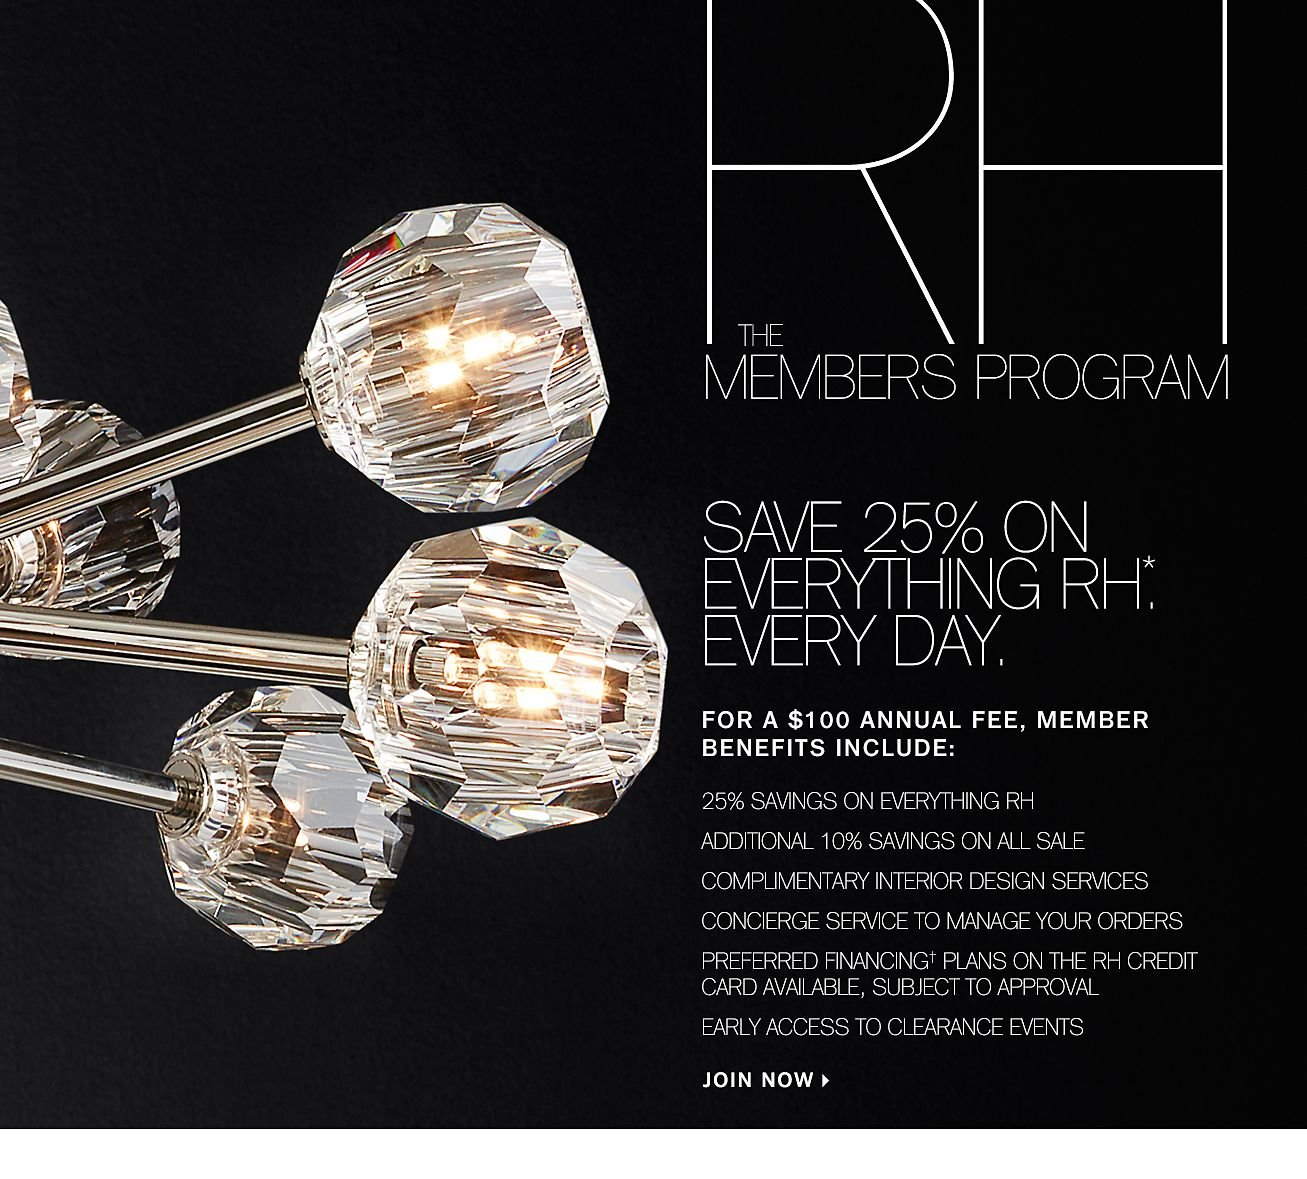 Restoration Hardware Experience Rh Modern And Save 25 On Everything With The Members Program Milled